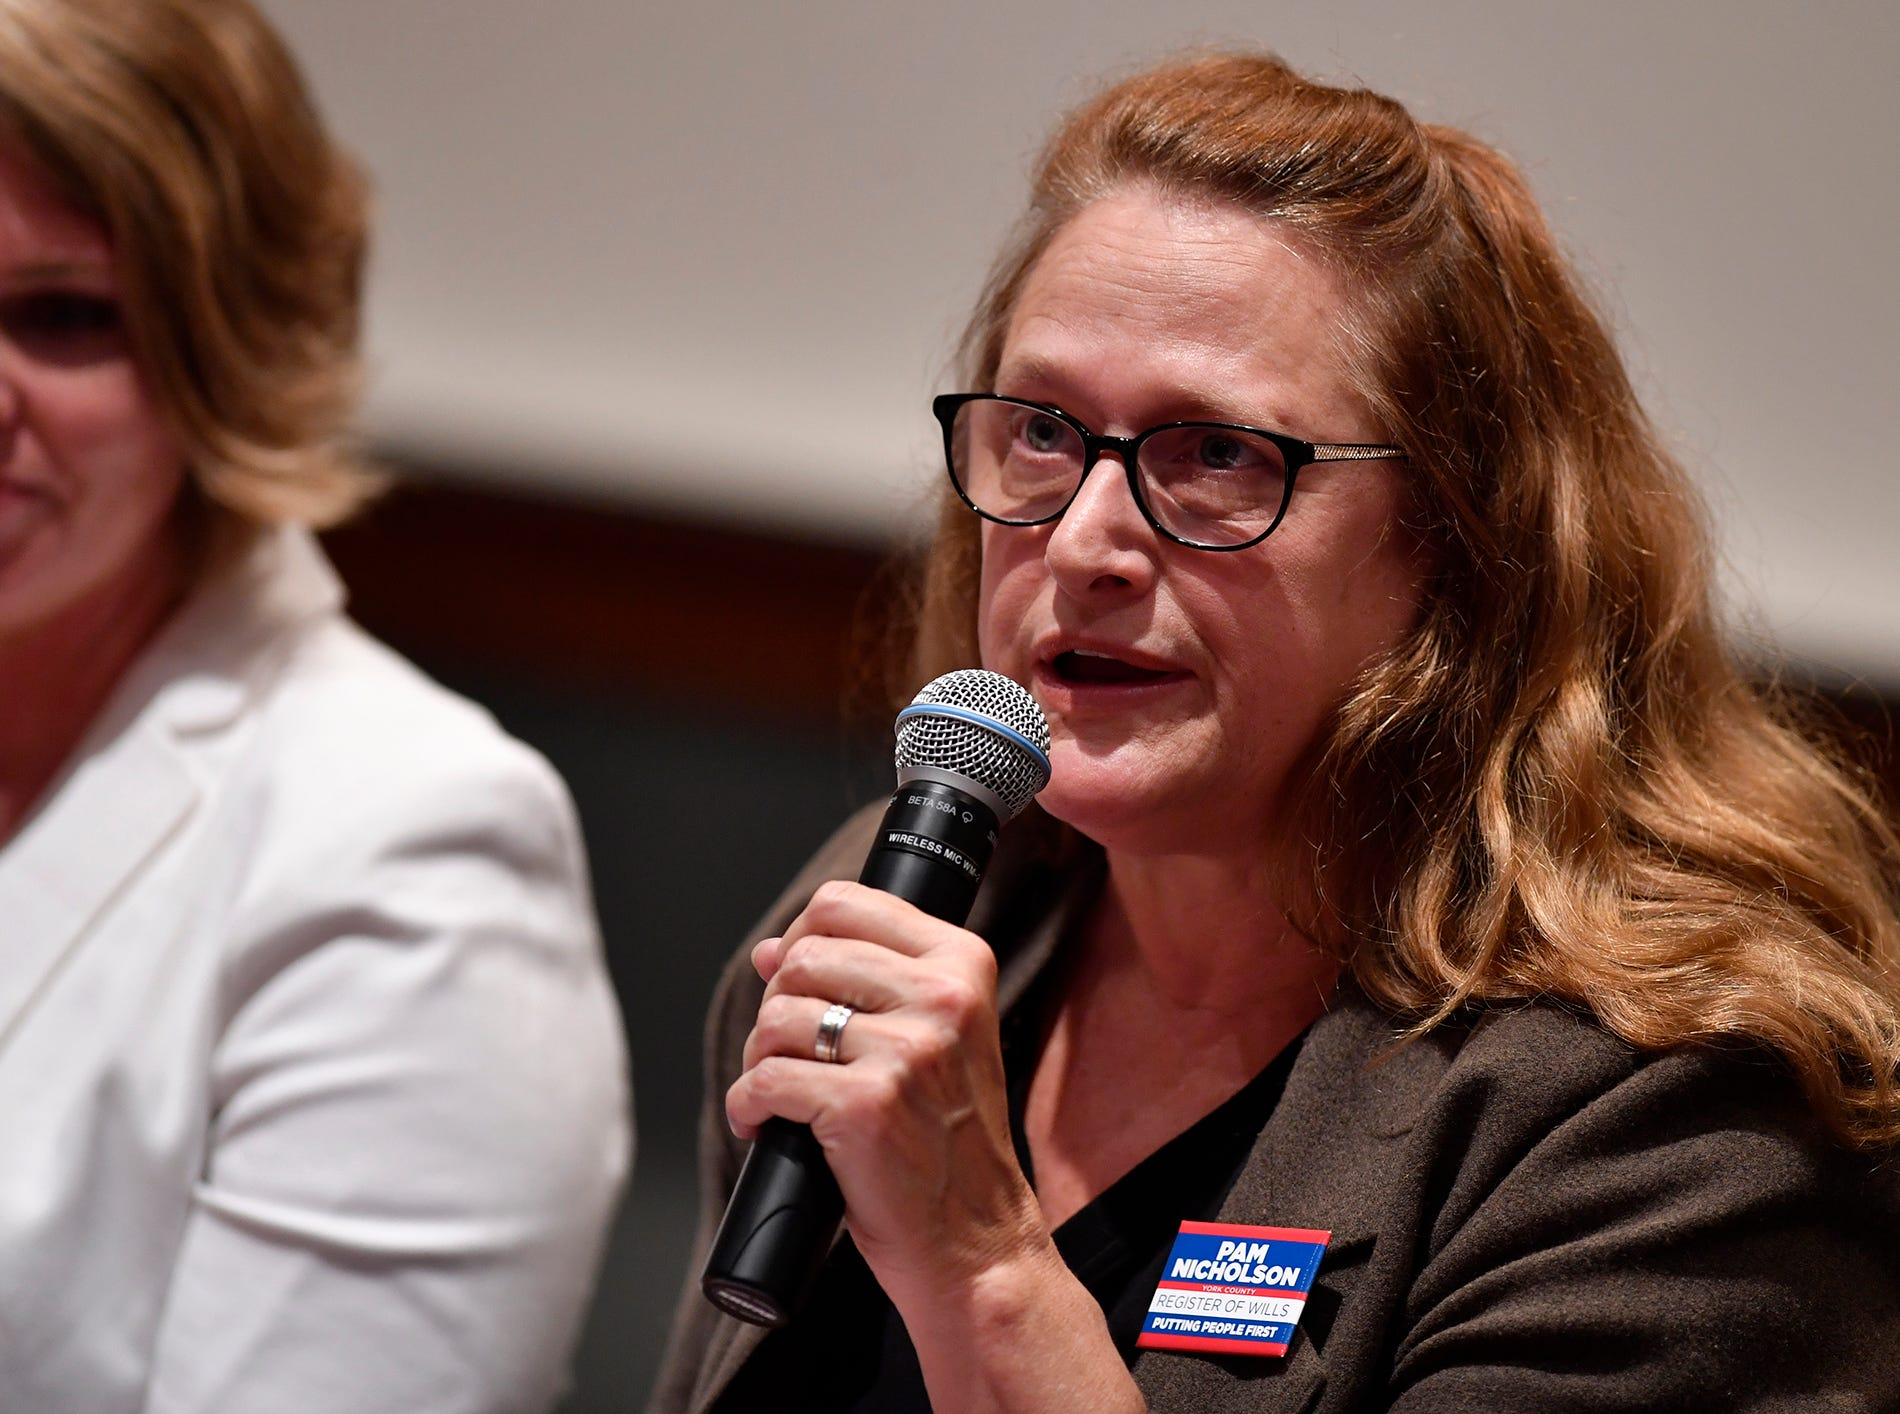 Pam Nicholson (D) candidate for Clerk of Orphans Court/Register of Wills, take part in the York Stands Up bipartisan countywide candidates forum in the Weinstock Lecture Hall inside the Willman Business Center at York College, Monday, May 6, 2019.John A. Pavoncello photo